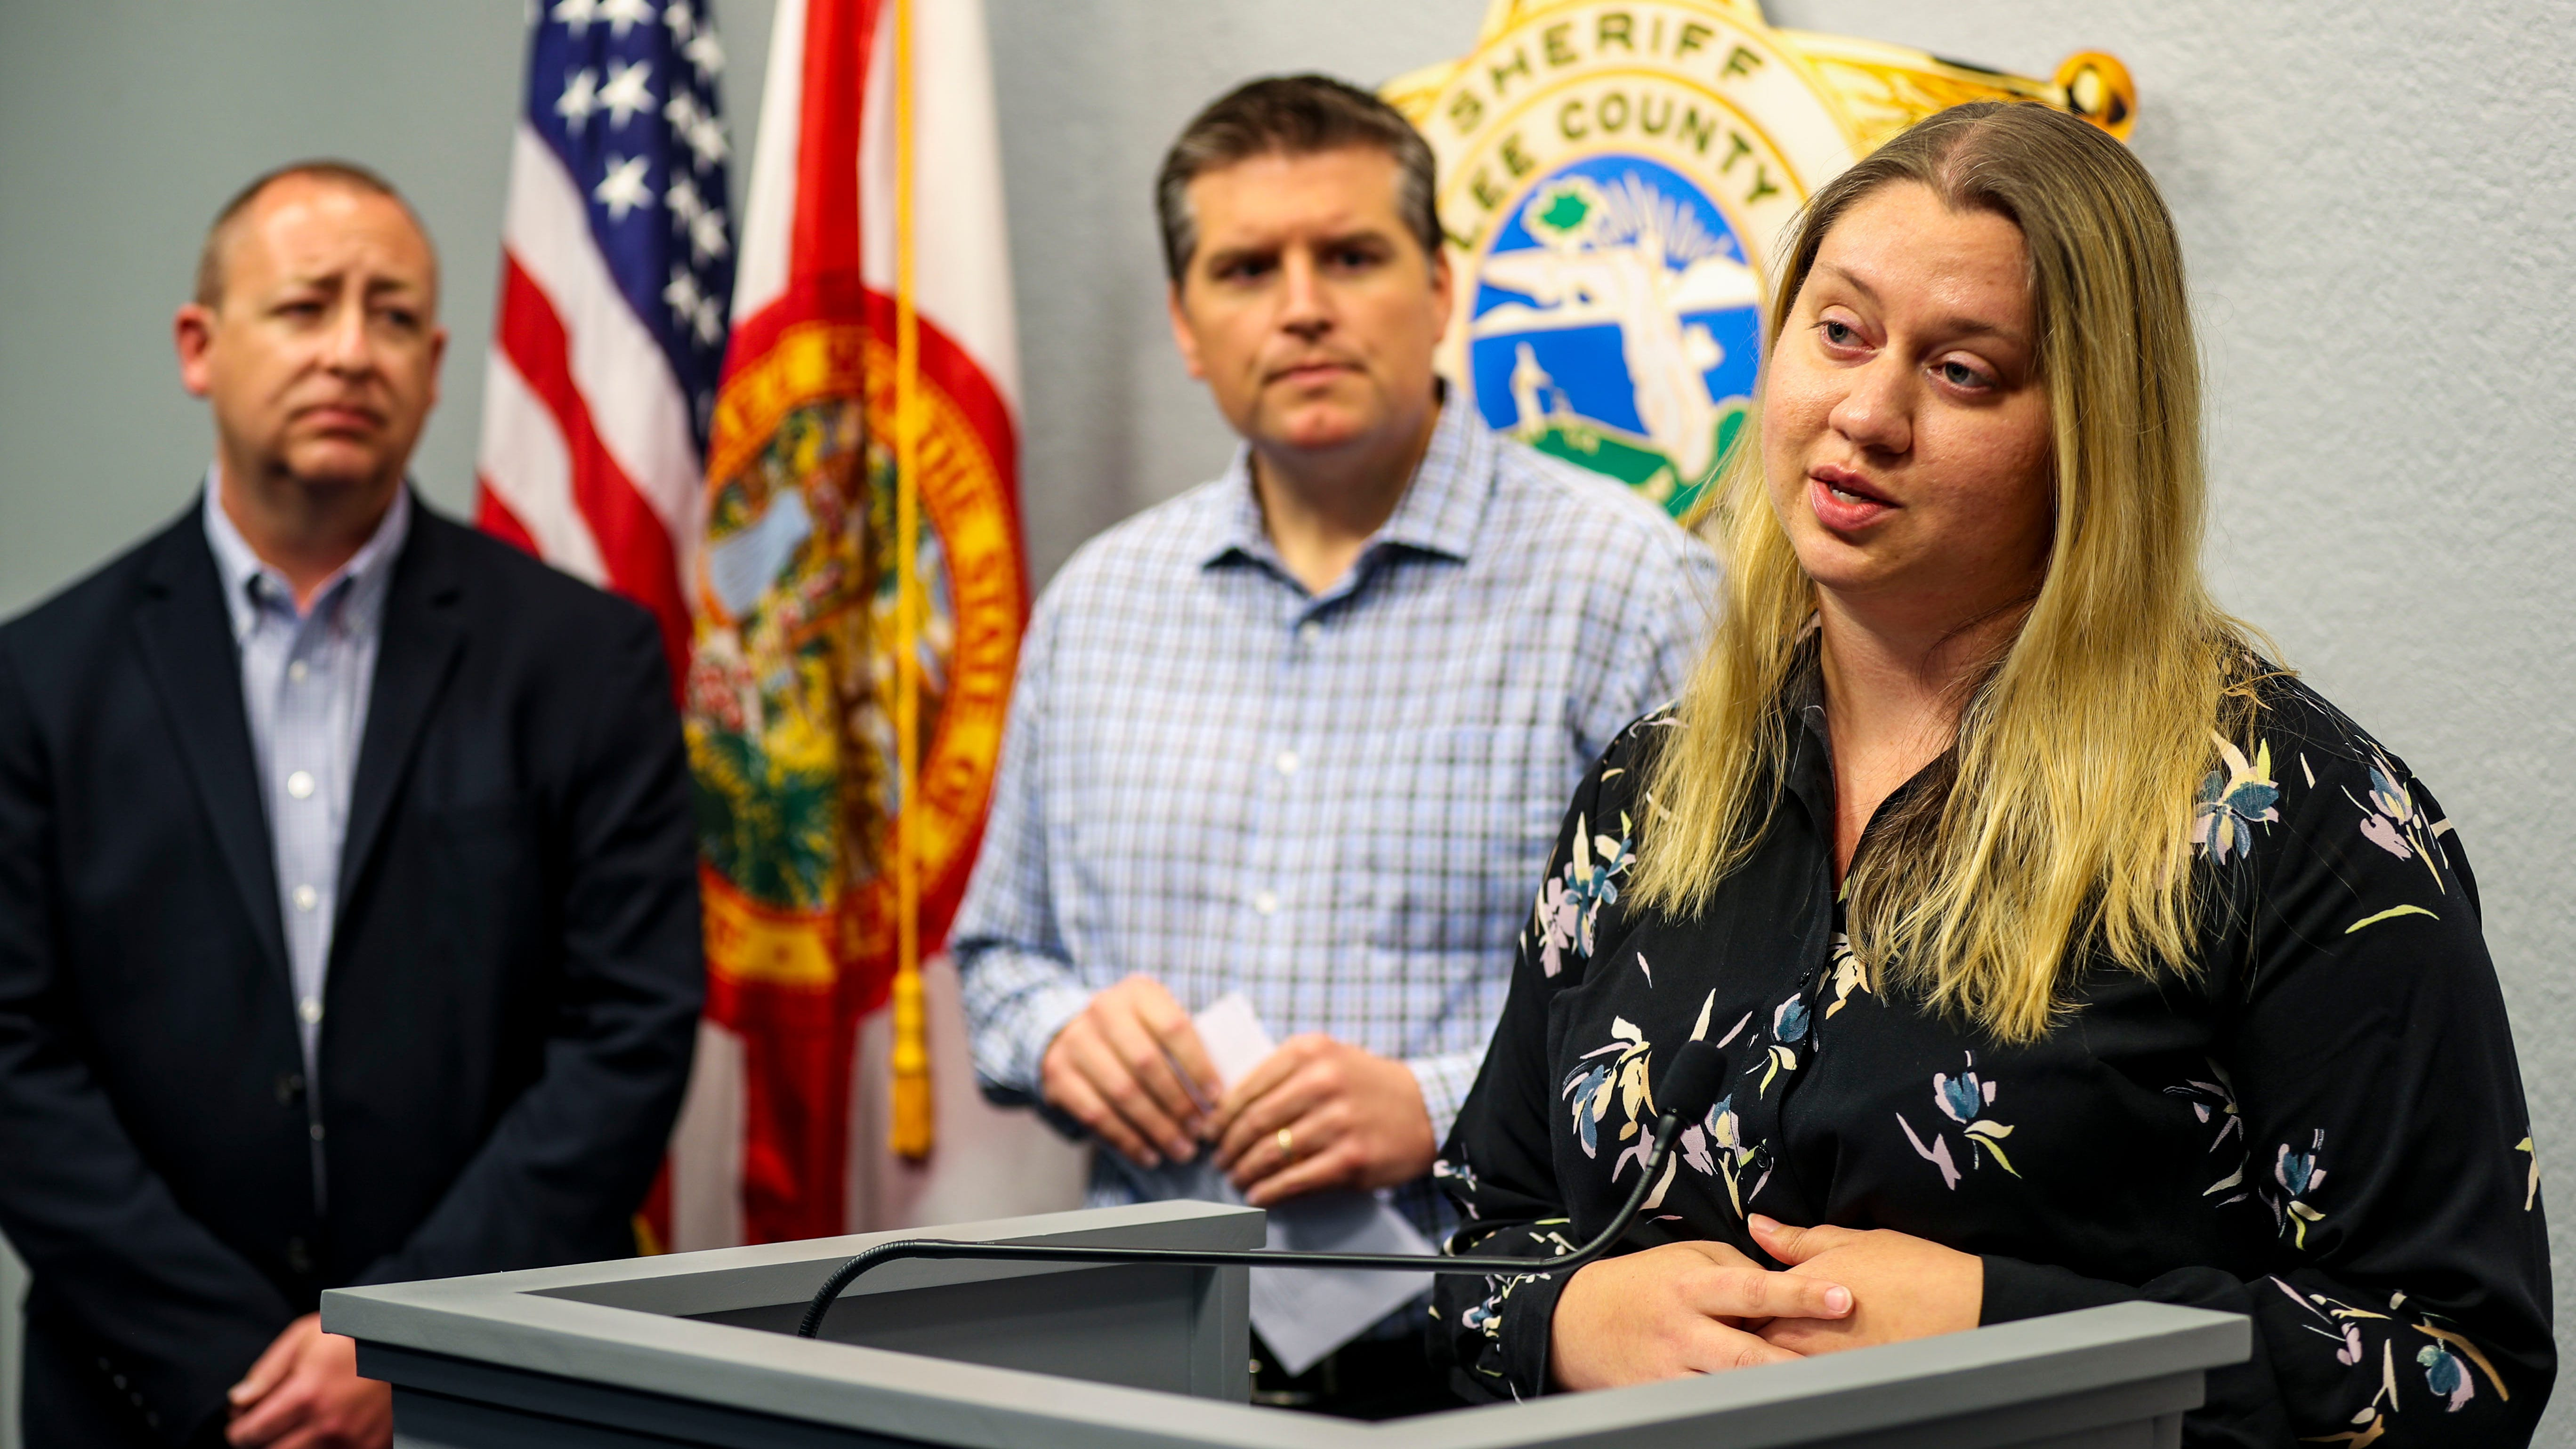 During a springtime press conference on COVID-19, Jennifer Roth, biological administrator from the Lee County Health Department, spoke about working with the CDC when cases are found in the county. This week she spoke of holiday safety during a press conference at the Lee County school district.